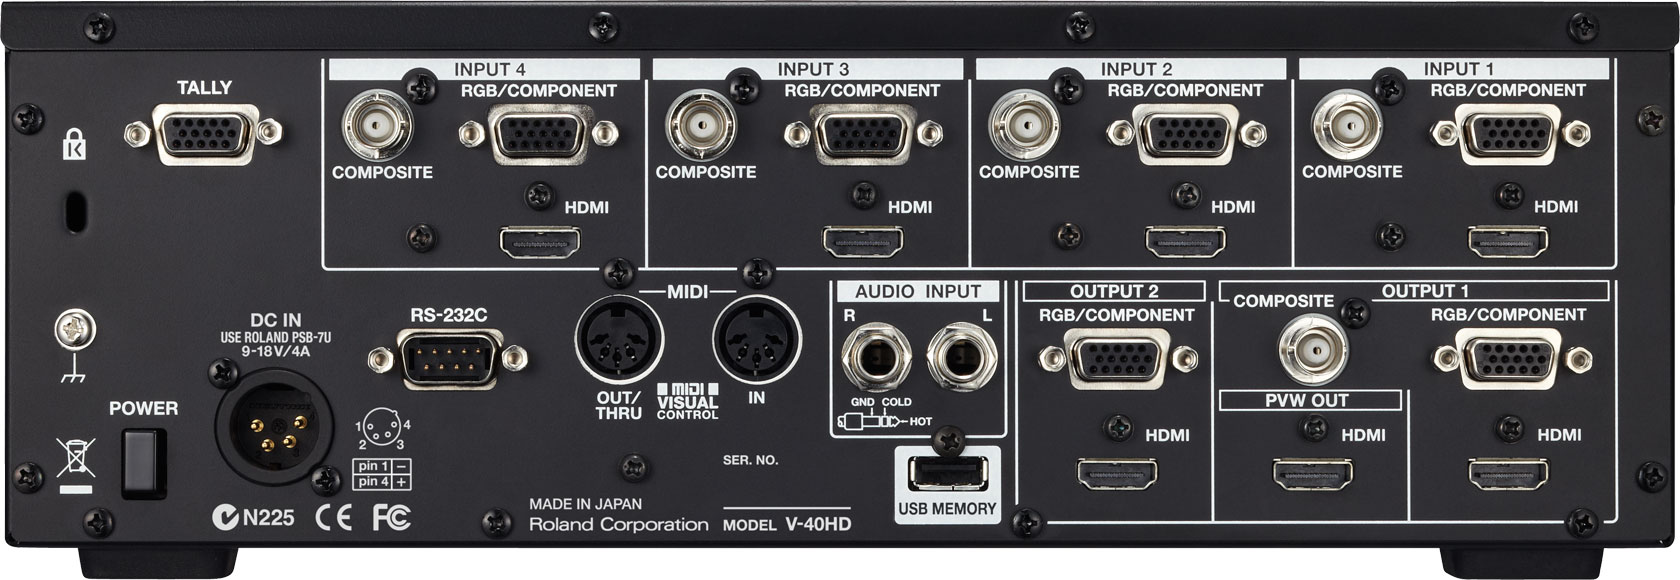 ROLAND V-40HD - 4-Channel Multi-Format Video Switcher - 3.jpg